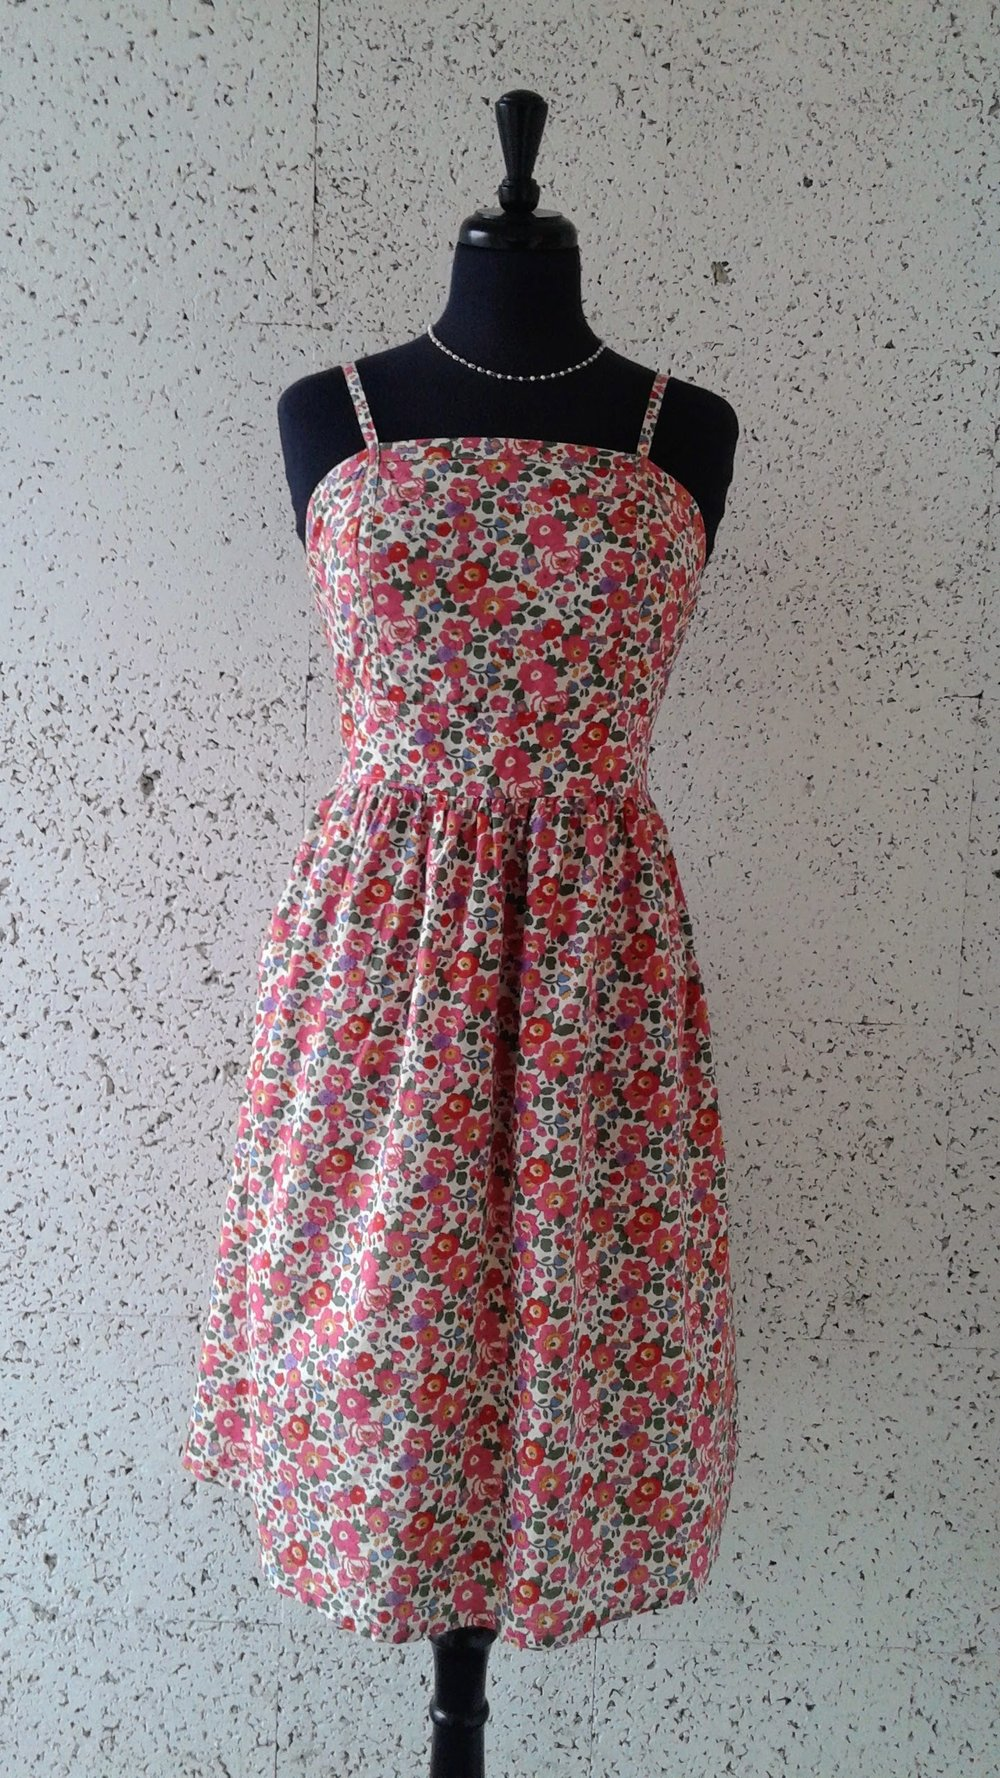 Liberty Arts Fabrics dress; Size 10, $28